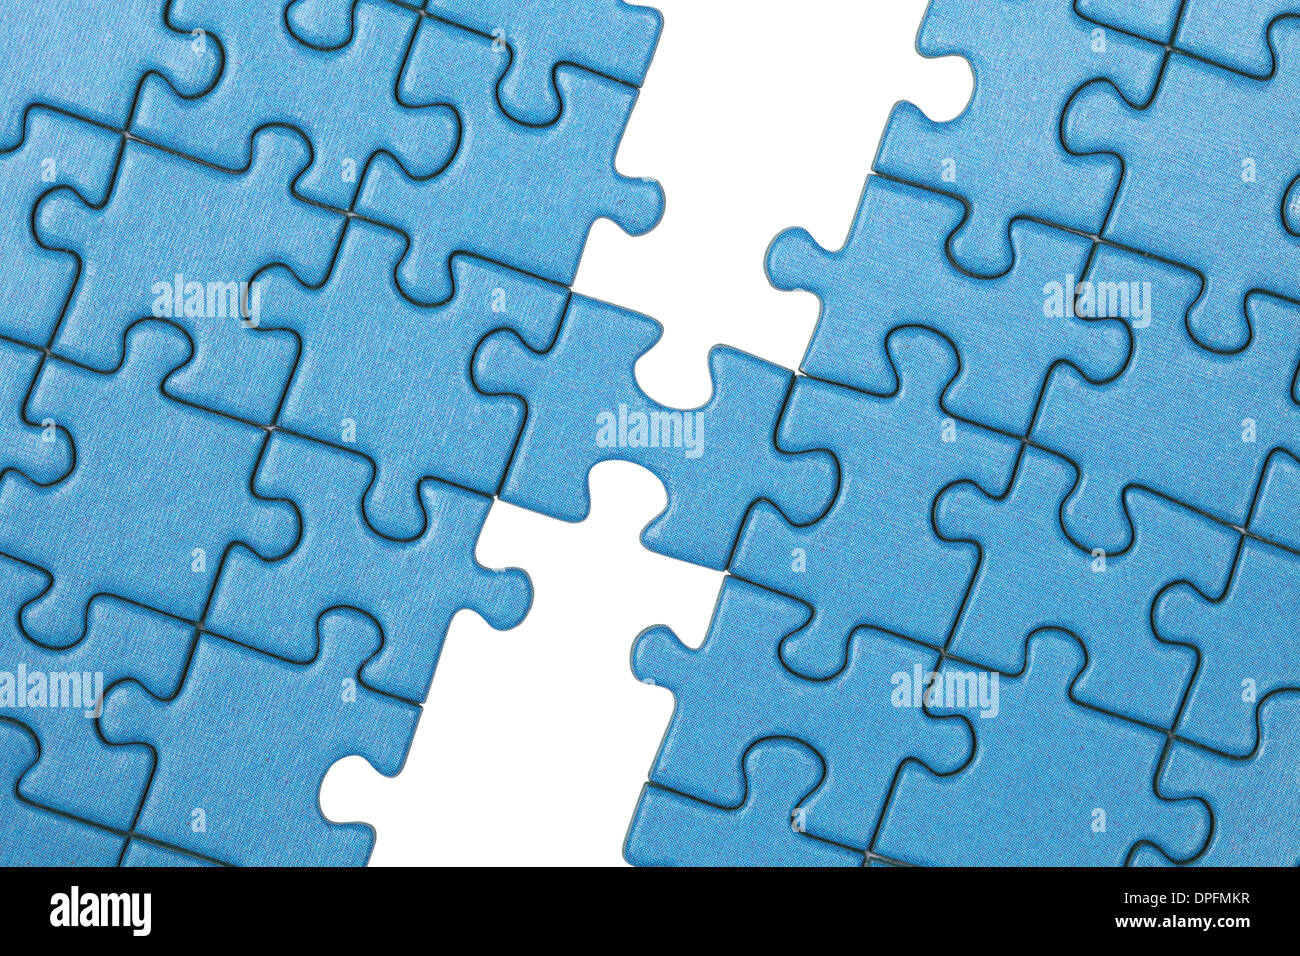 Symbolic picture showing the connection between two parts with a puzzle - Stock Image